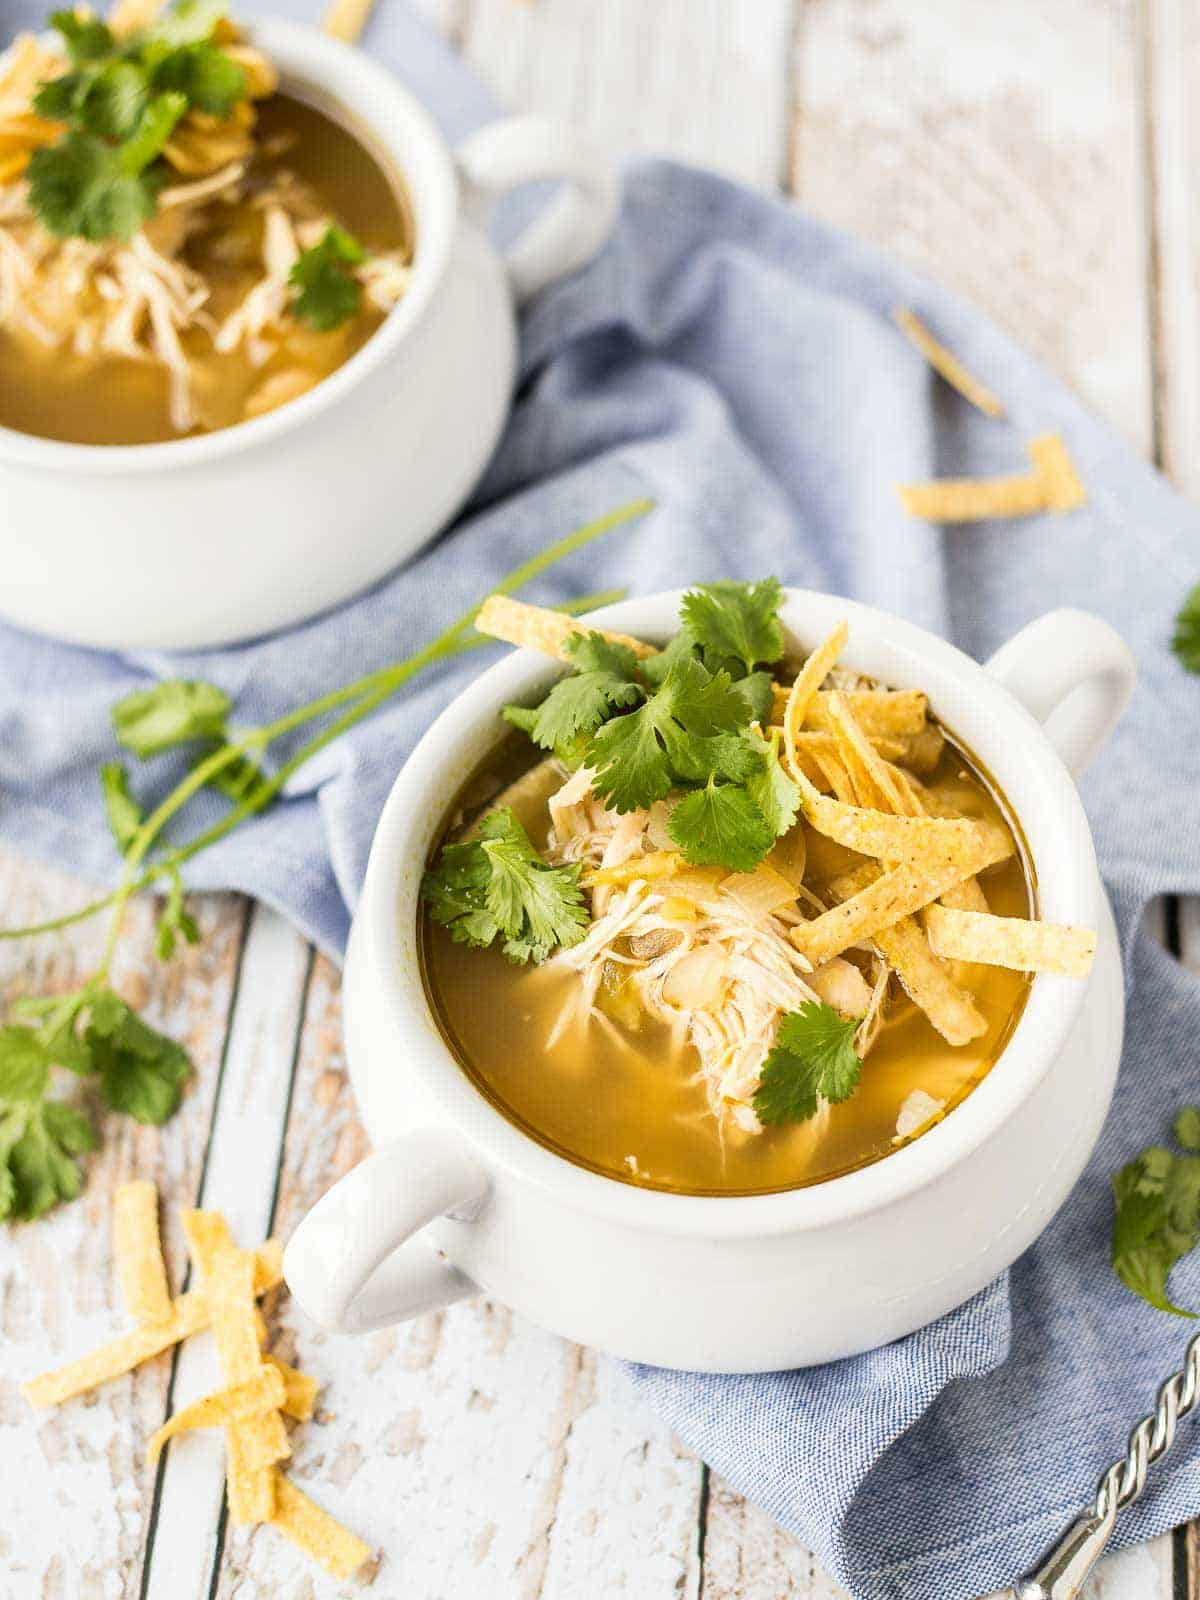 Overhead of soup in bowls, garnished with cilantro leaves, shredded cheese, and tortilla strips.